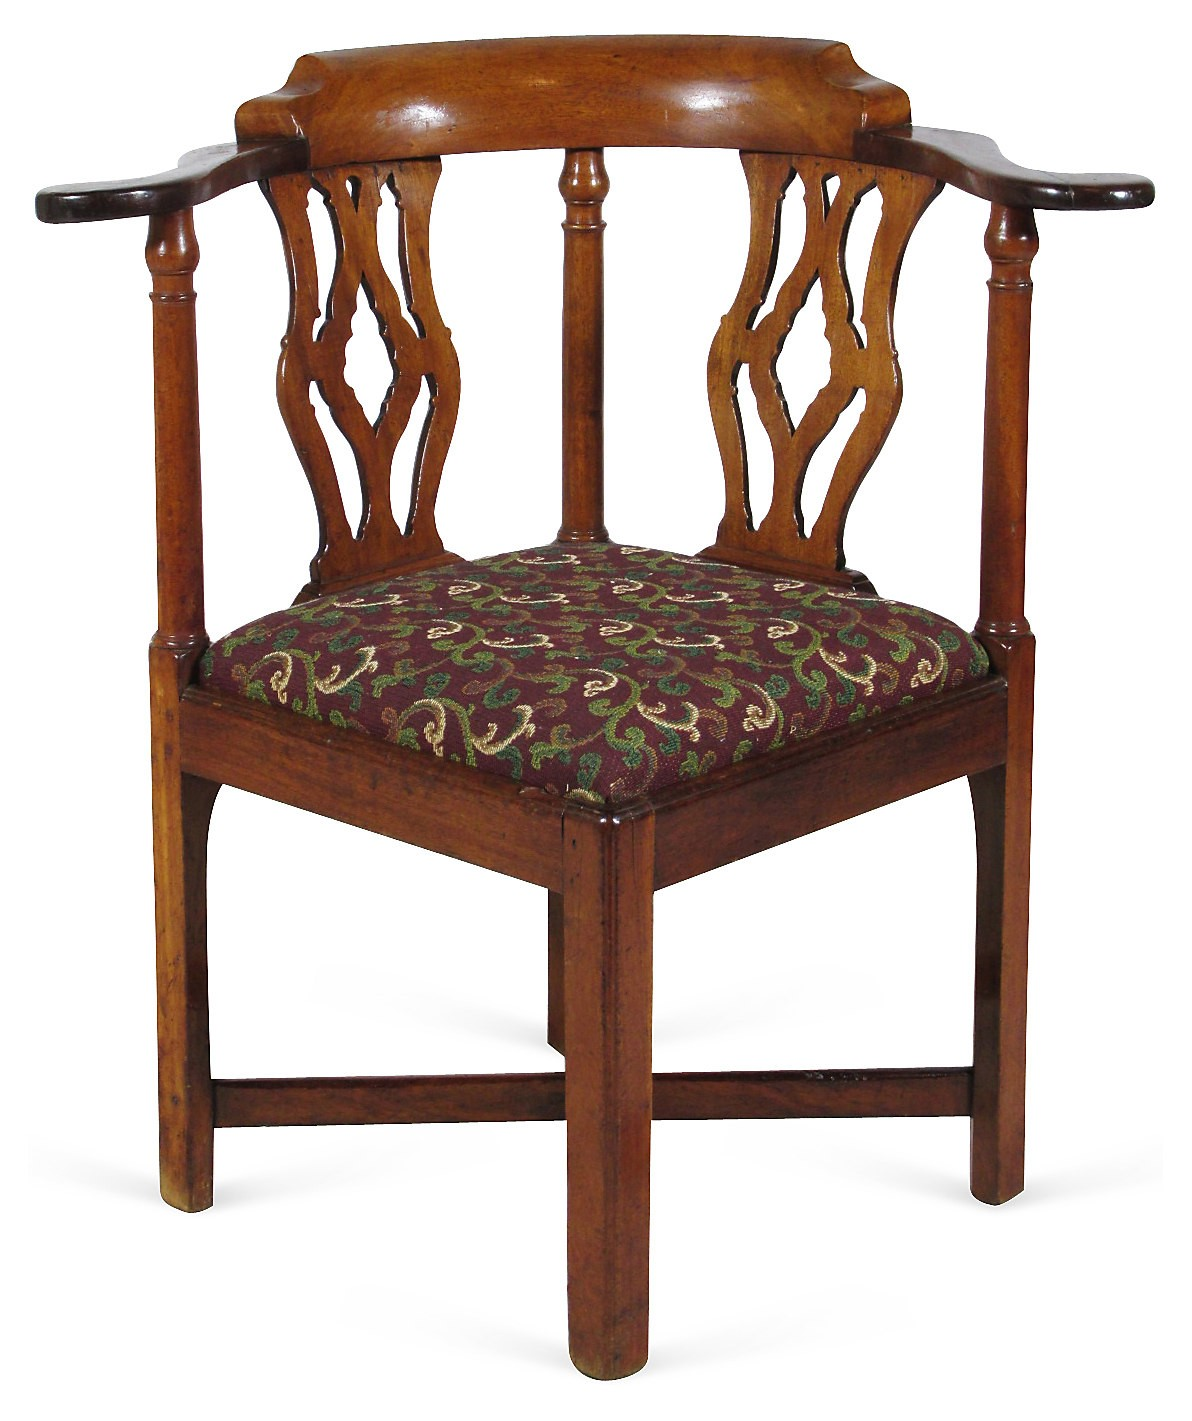 Roundabout Chair 18th C Roundabout Chair Seating Shop